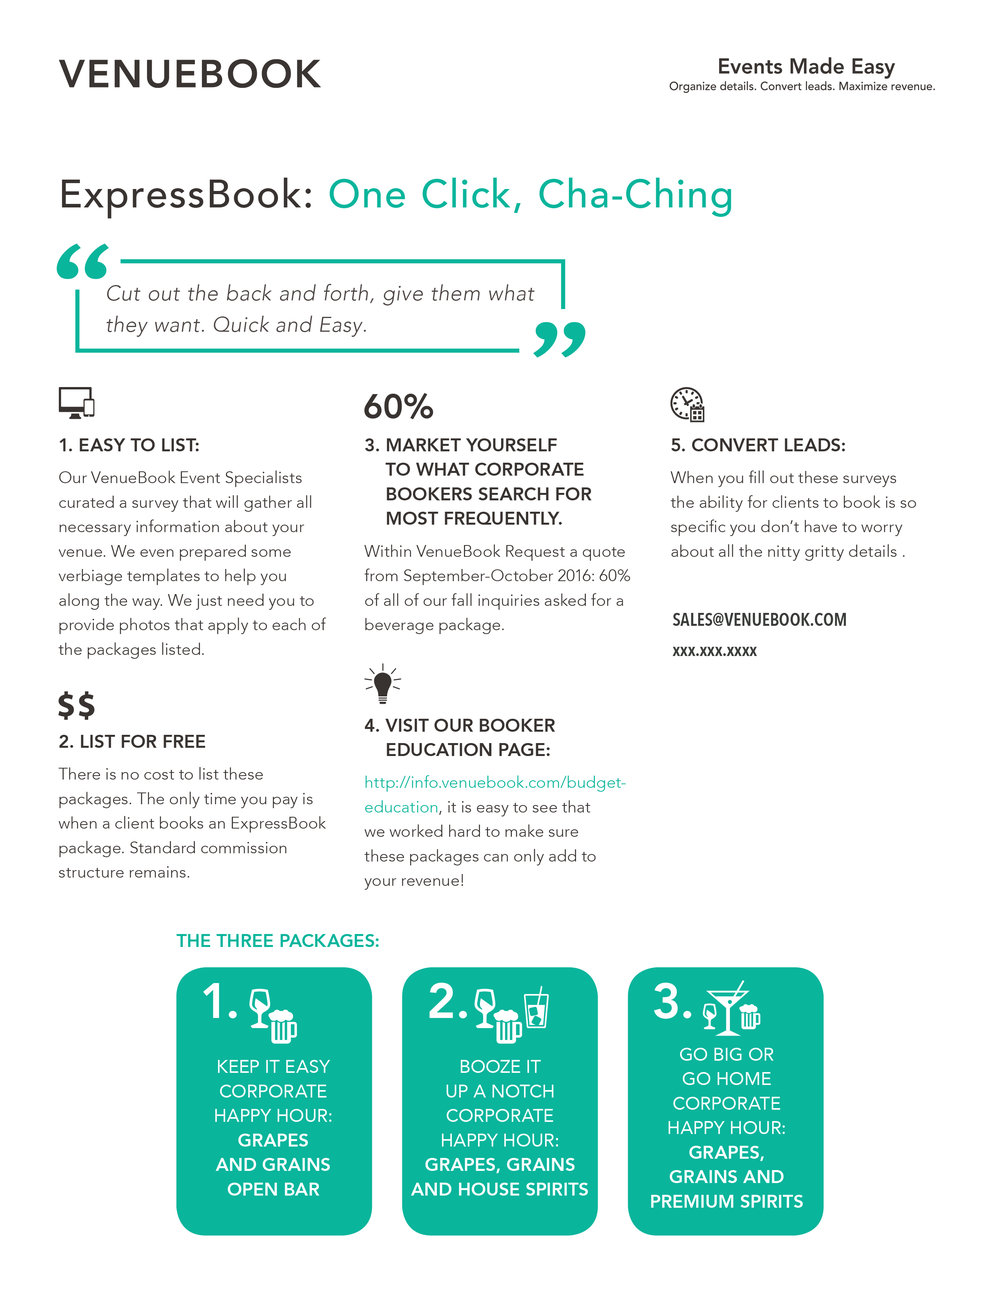 VENUEBOOK Cha-Ching Infographic